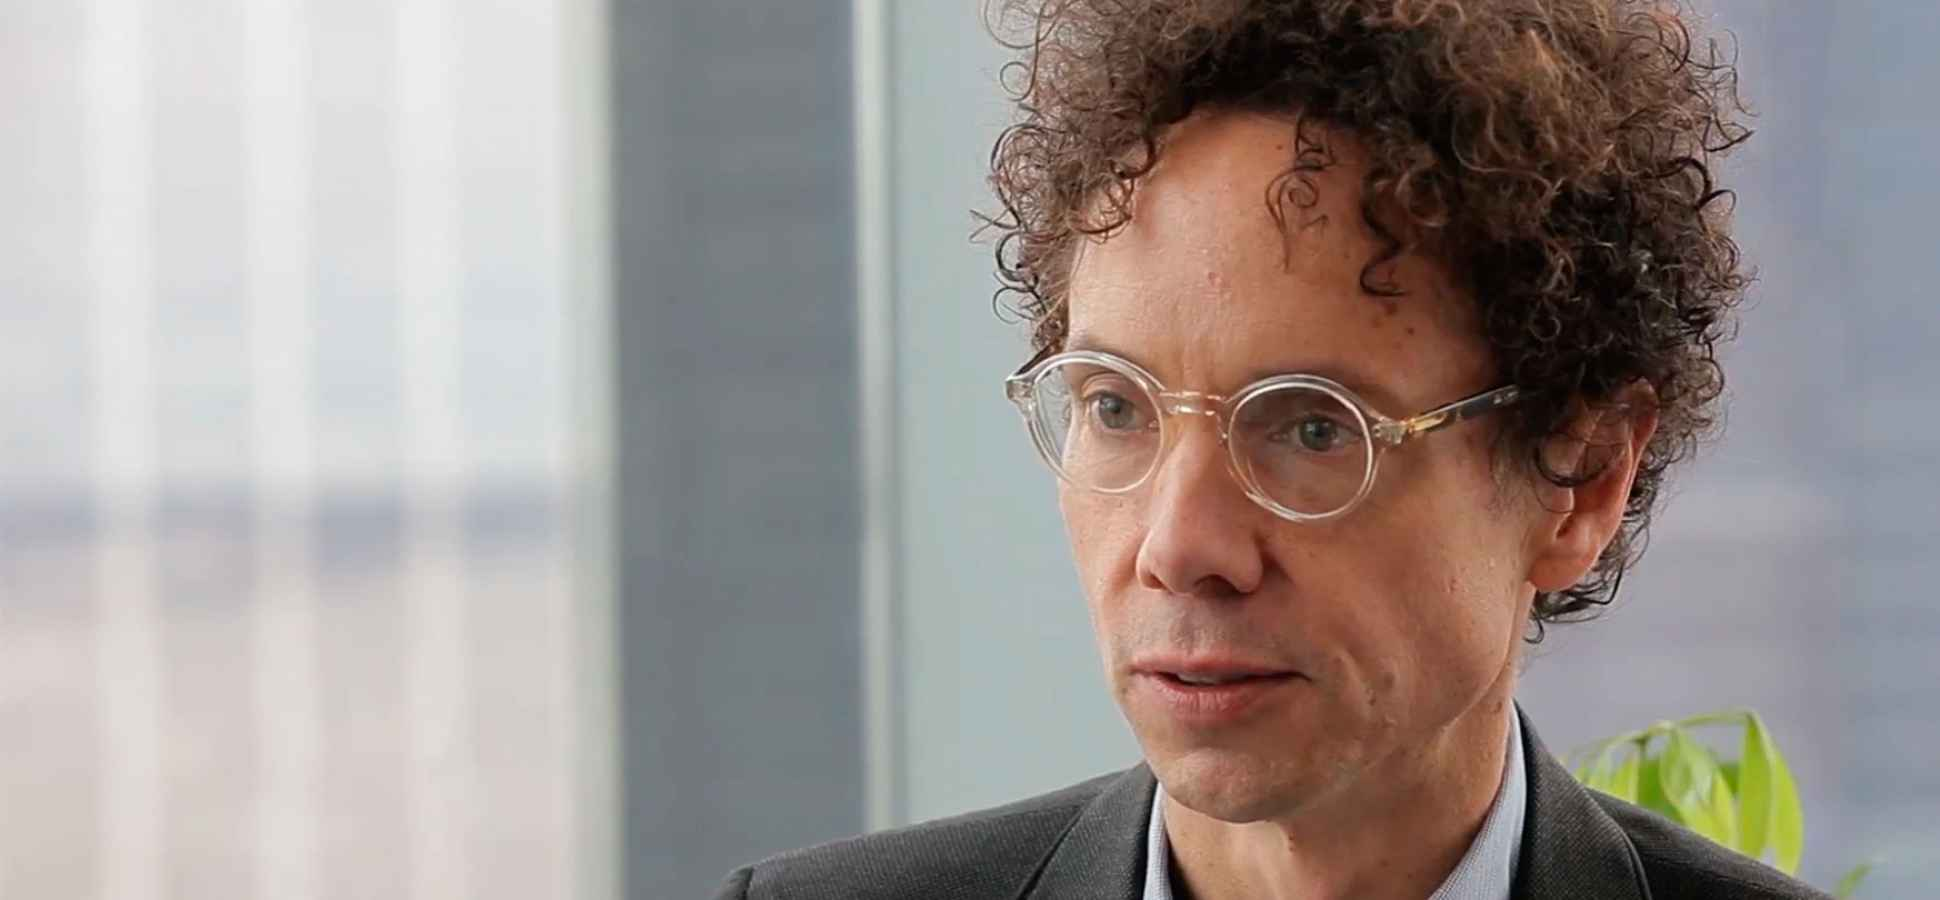 Malcolm Gladwell on Why Entrepreneurs Should Be Troublemakers